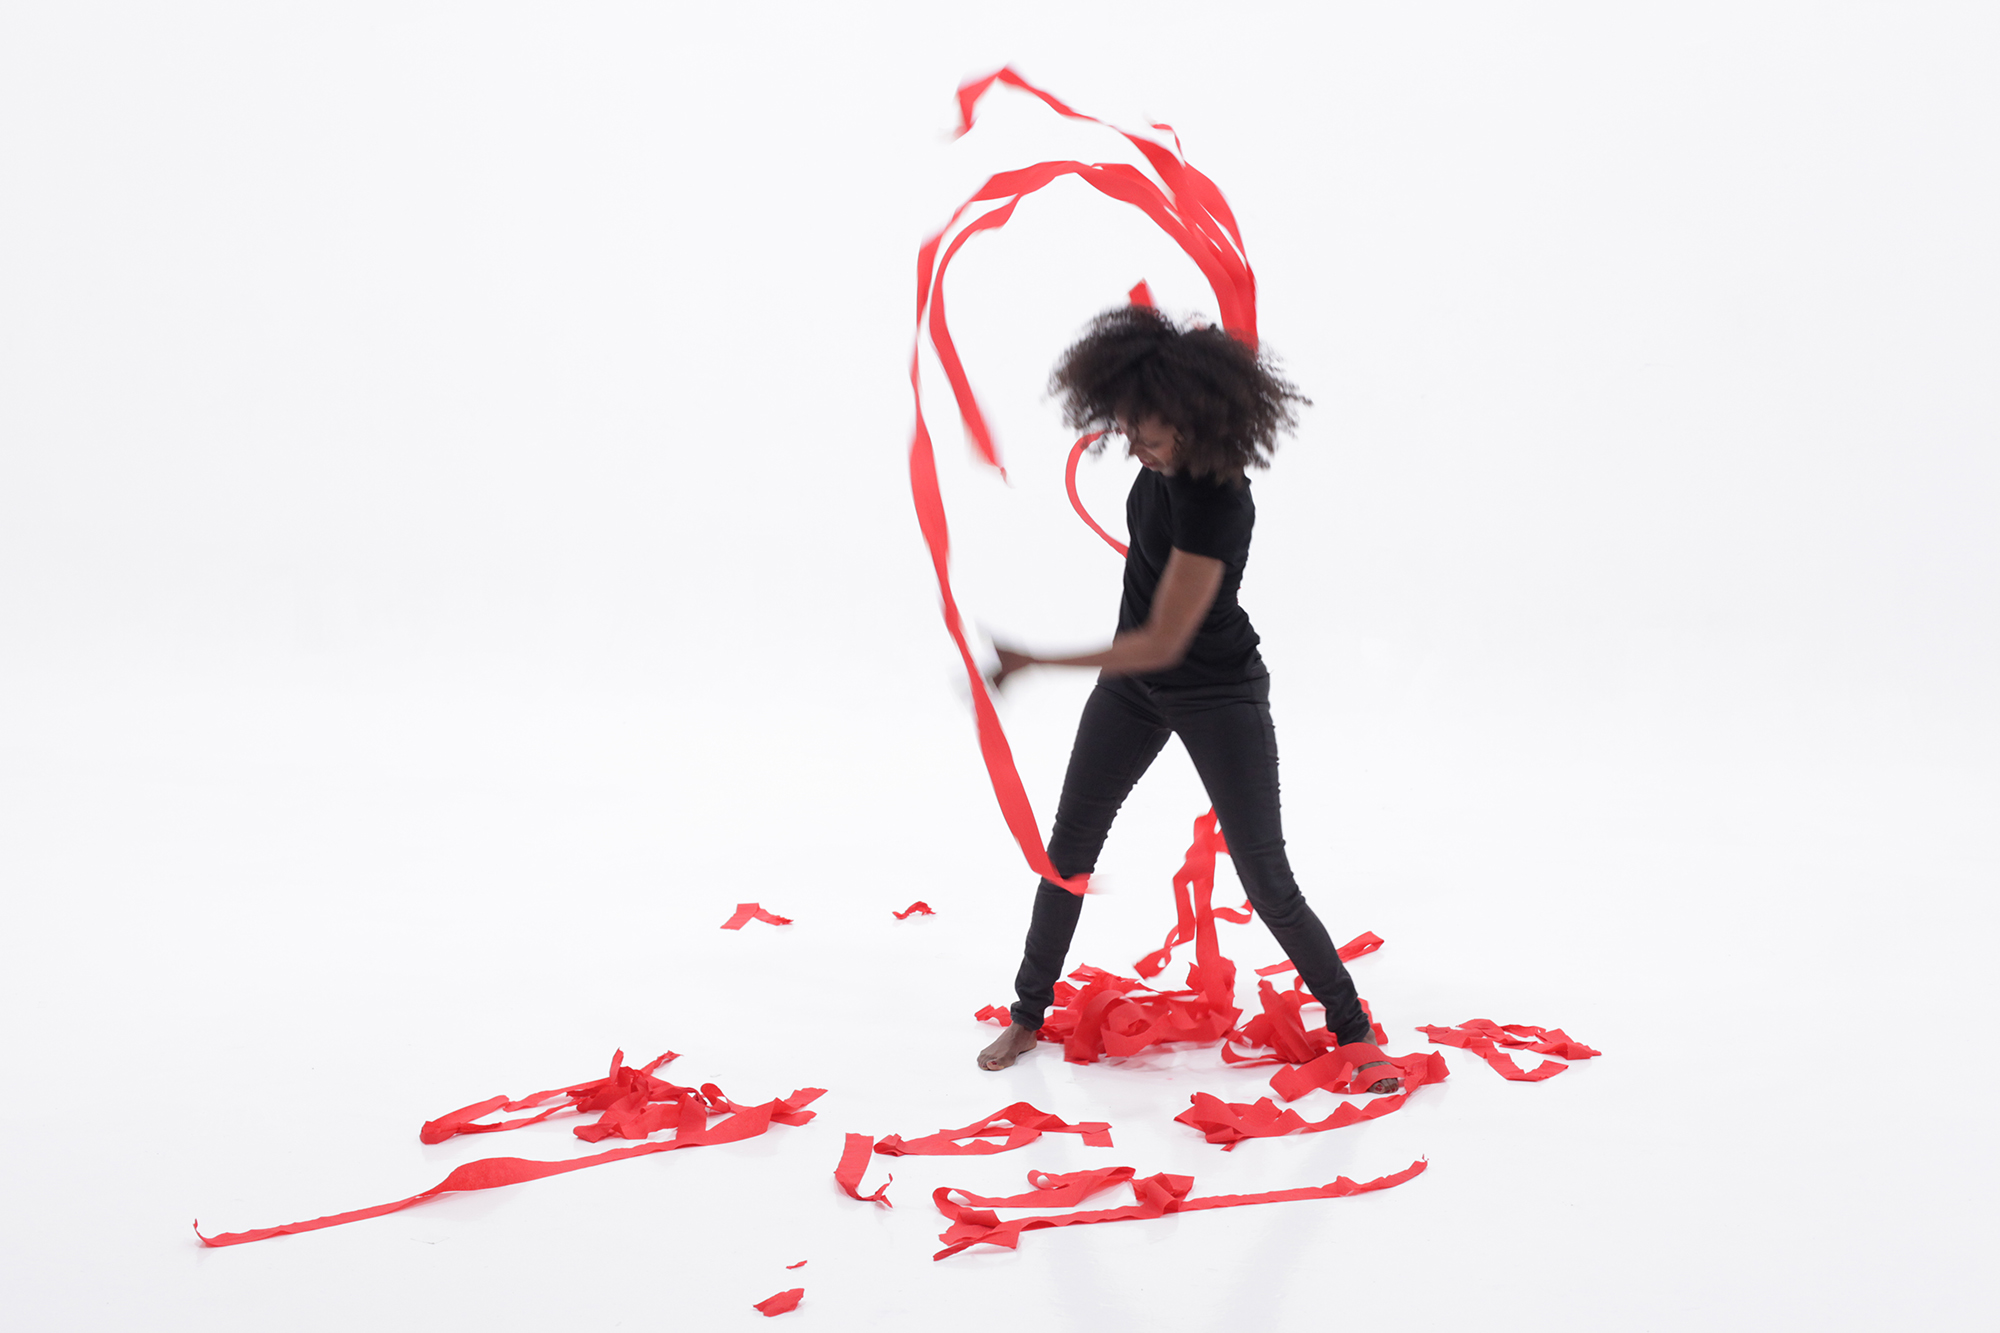 Grada Kilomba, ILLUSIONS, Vol. II, OEDIPUS, 2018, courtesy Grada Kilomba, photo Kathleen Kunath